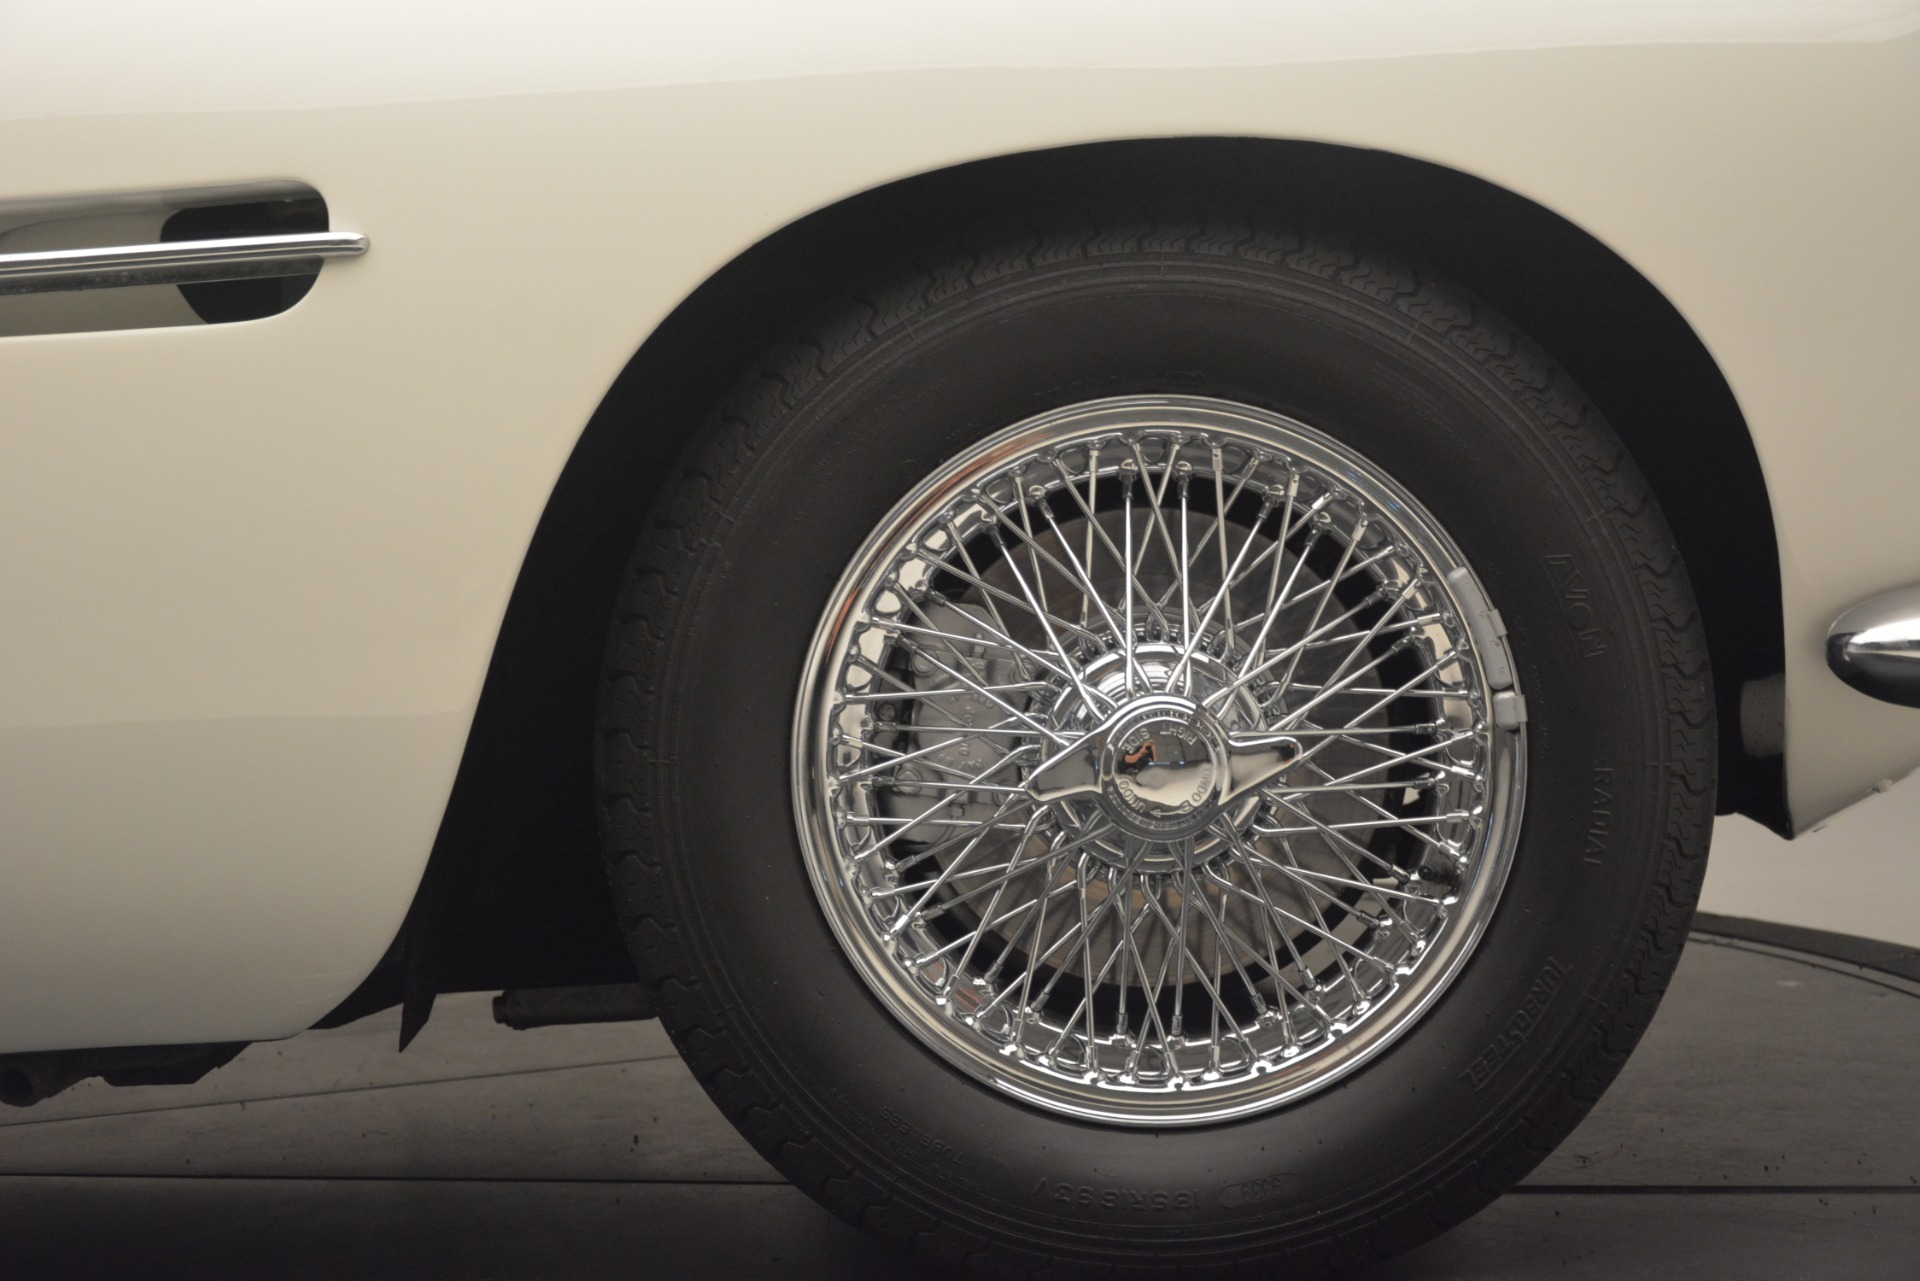 Used 1961 Aston Martin DB4 Series IV Coupe For Sale In Greenwich, CT 3186_p16